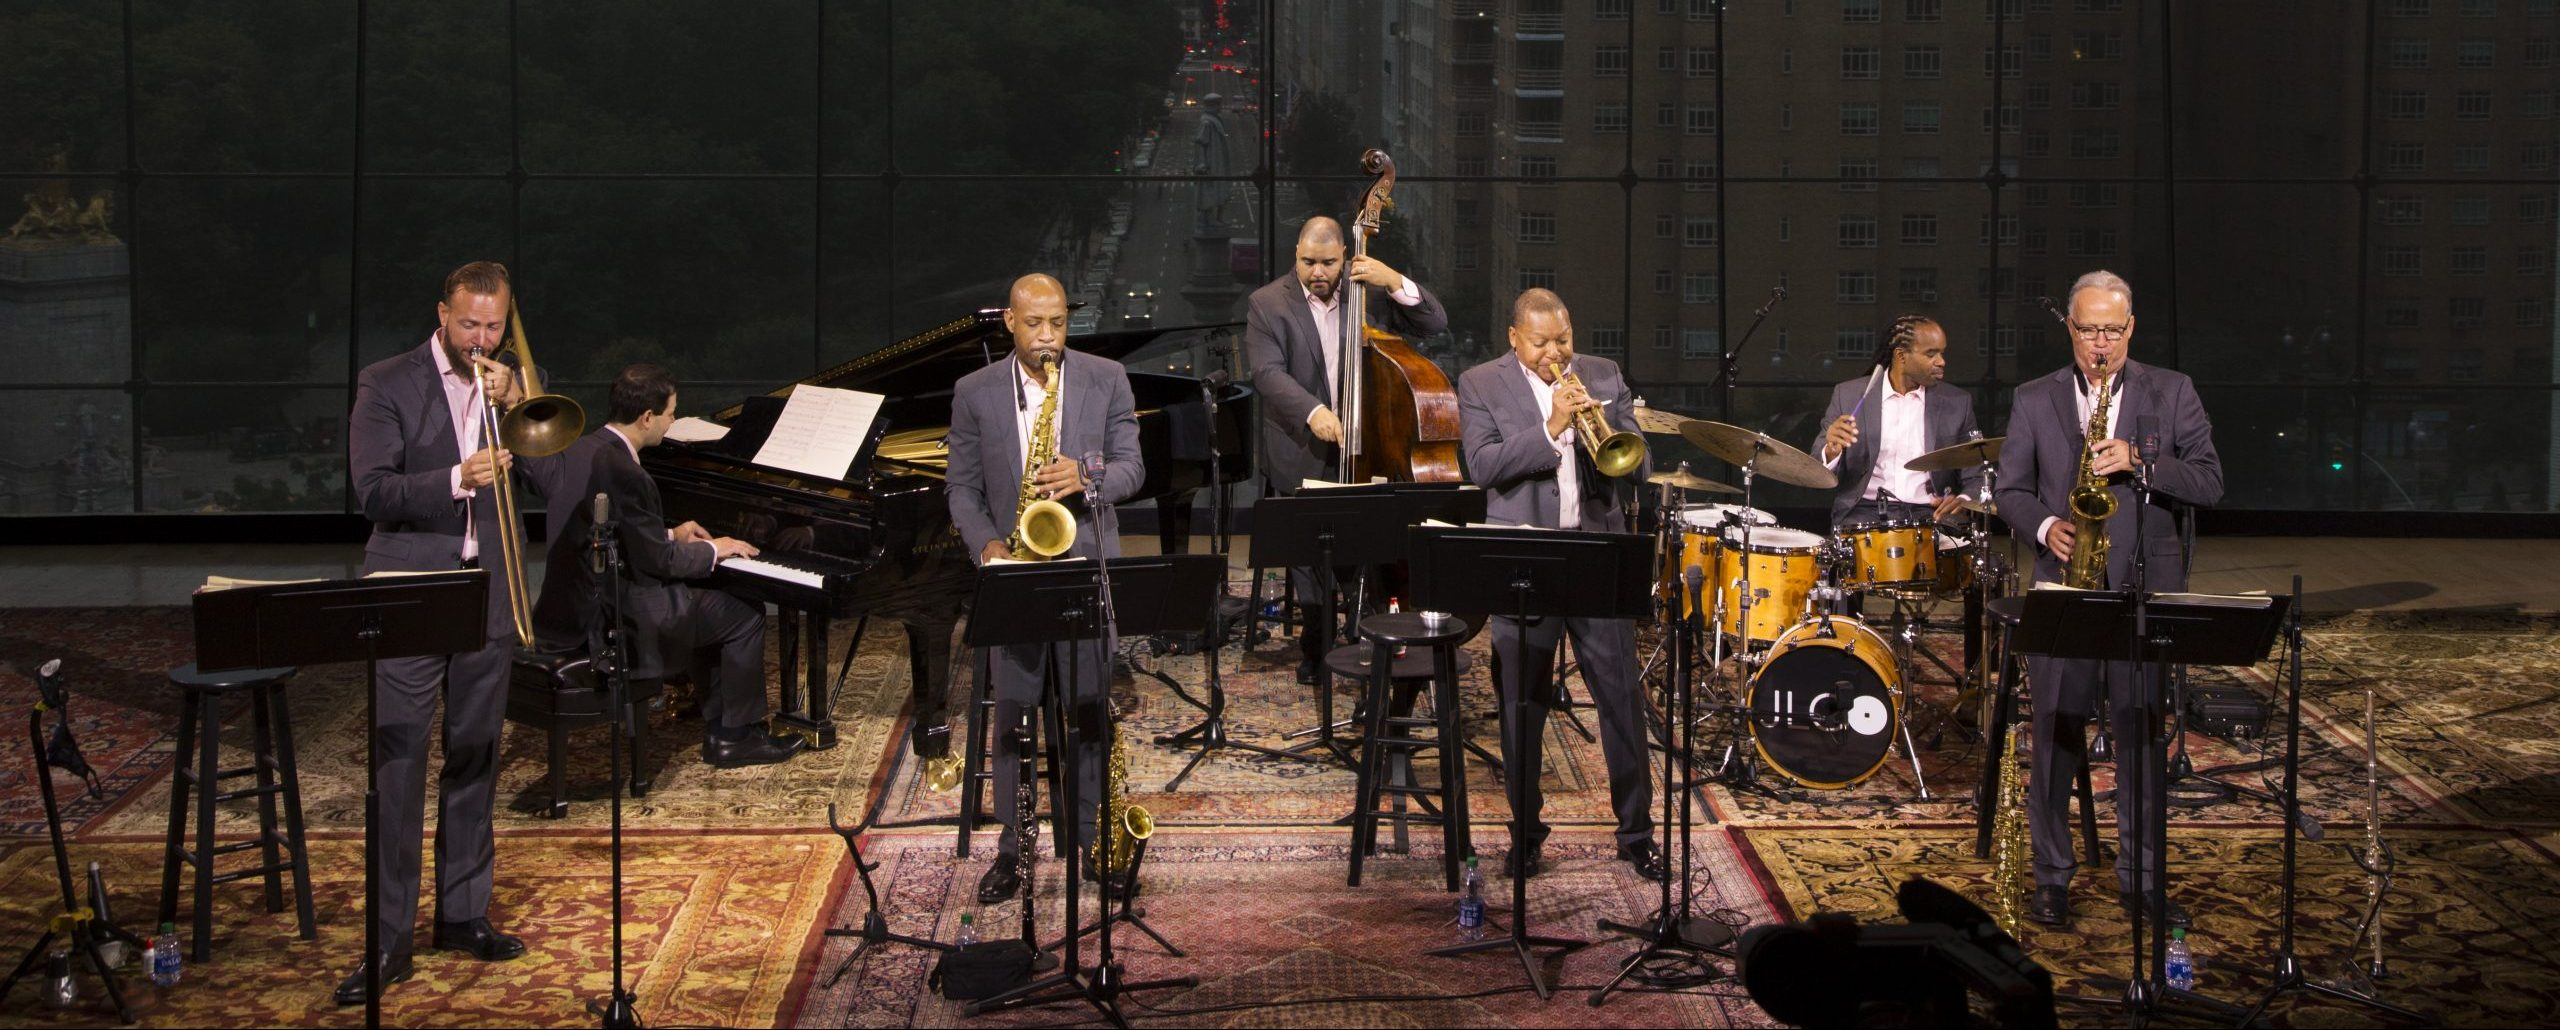 Seven men from the Jazz at Lincoln Center Orchestra stand on a stage and play their instruments